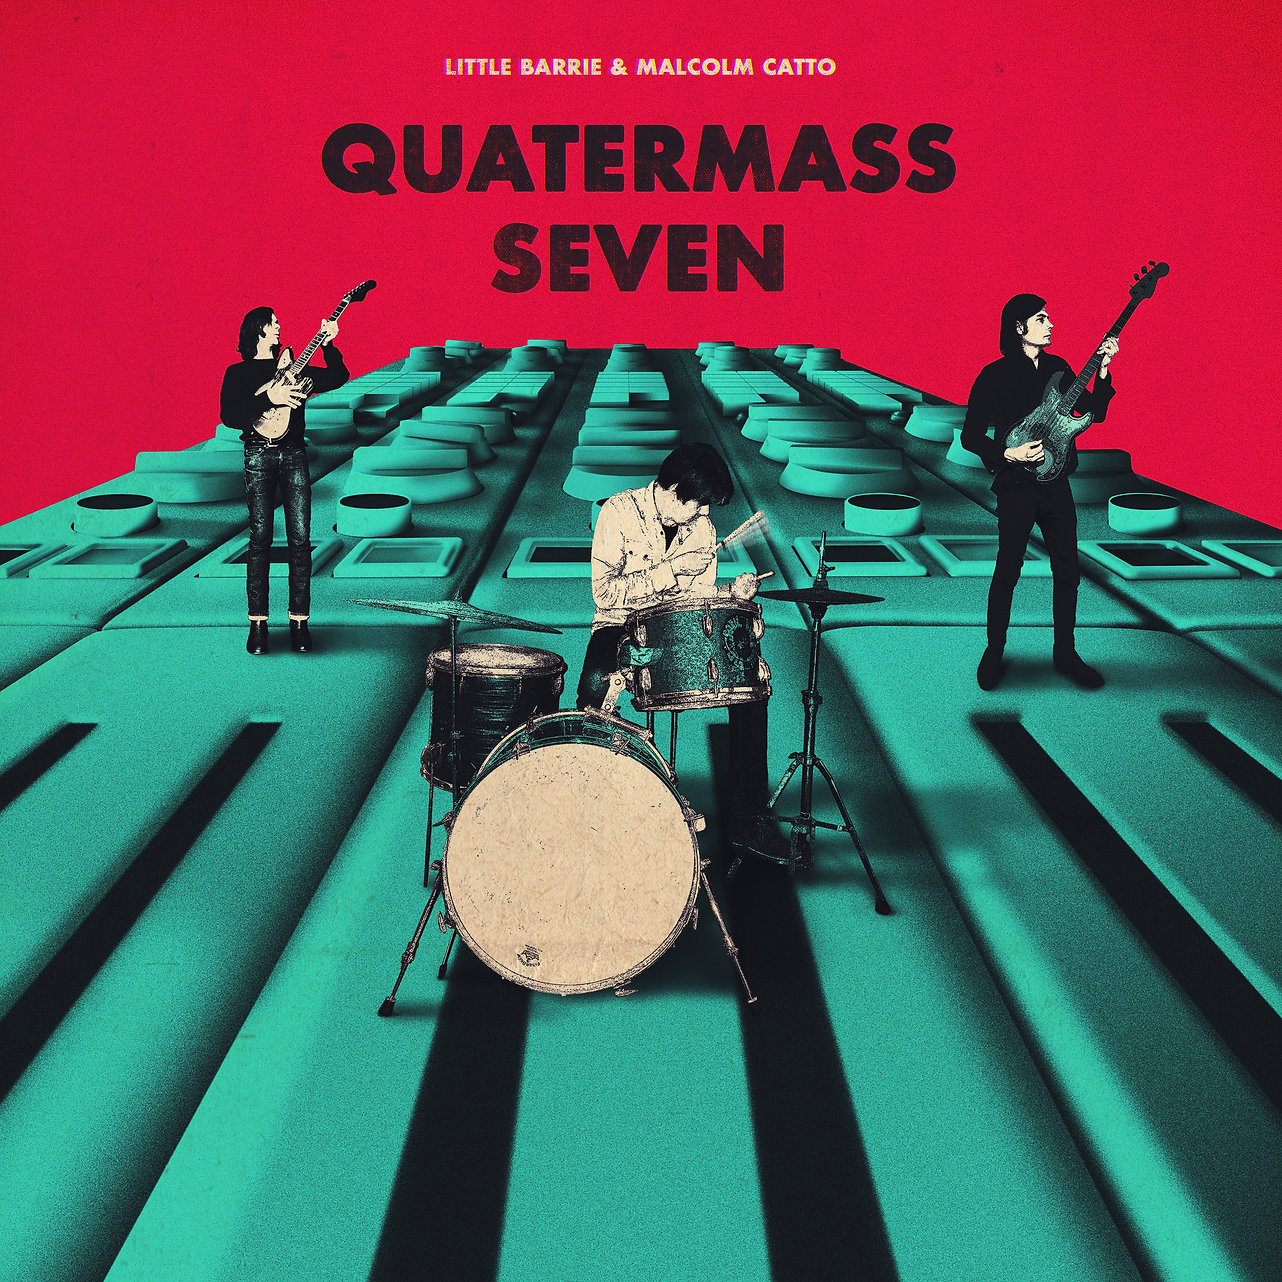 Quatermass_Seven_Artwork_(Large_RGB).jpg